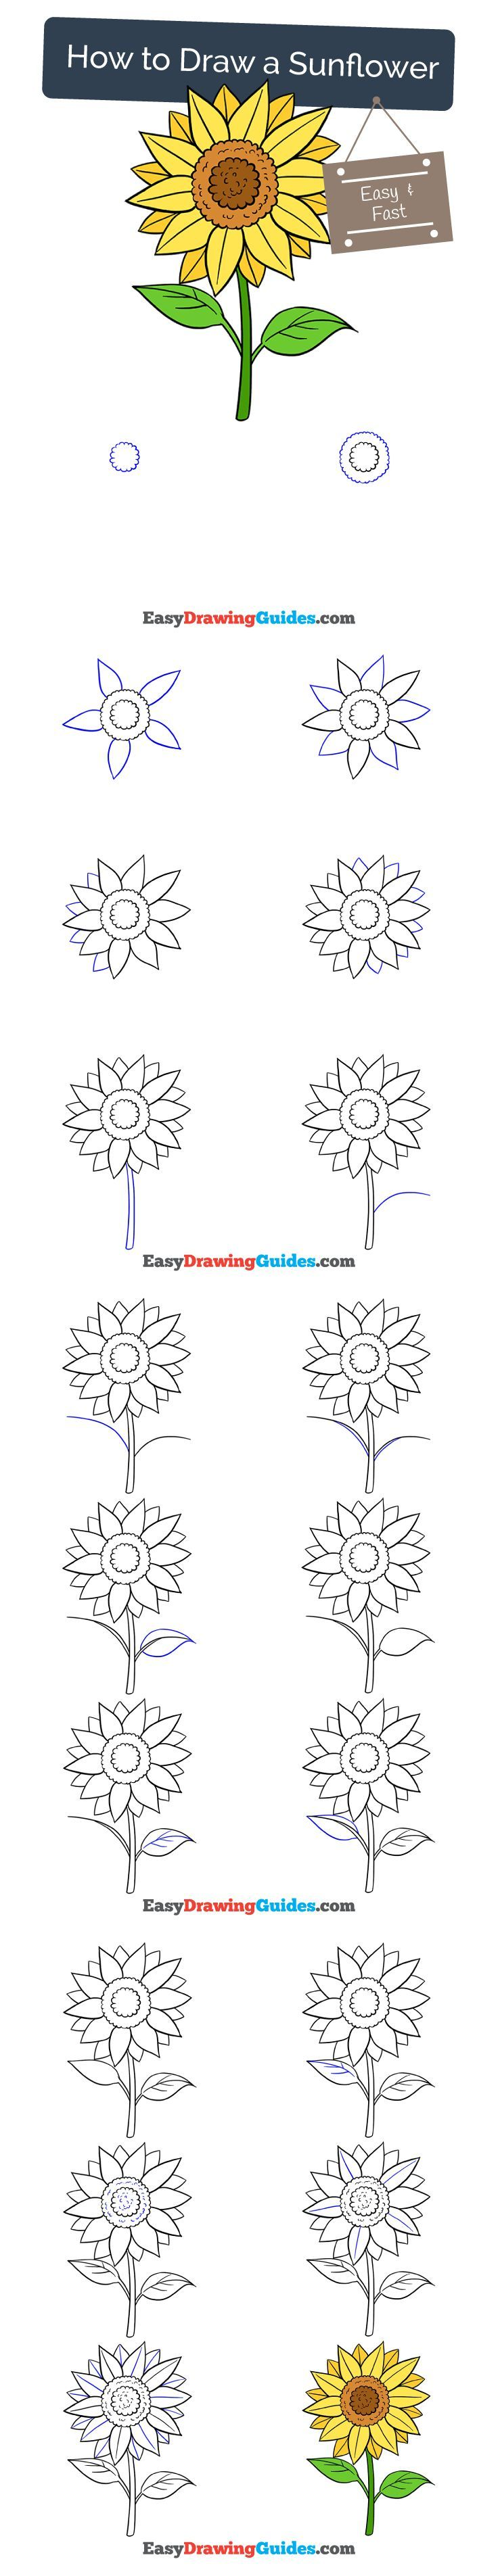 Learn How to Draw a Sunflower: Easy Step-by-Step Drawing Tutorial for Kids and Beginners. #sunflower #drawing. See the full tutorial at https://easydrawingguides.com/how-to-draw-a-sunflower/